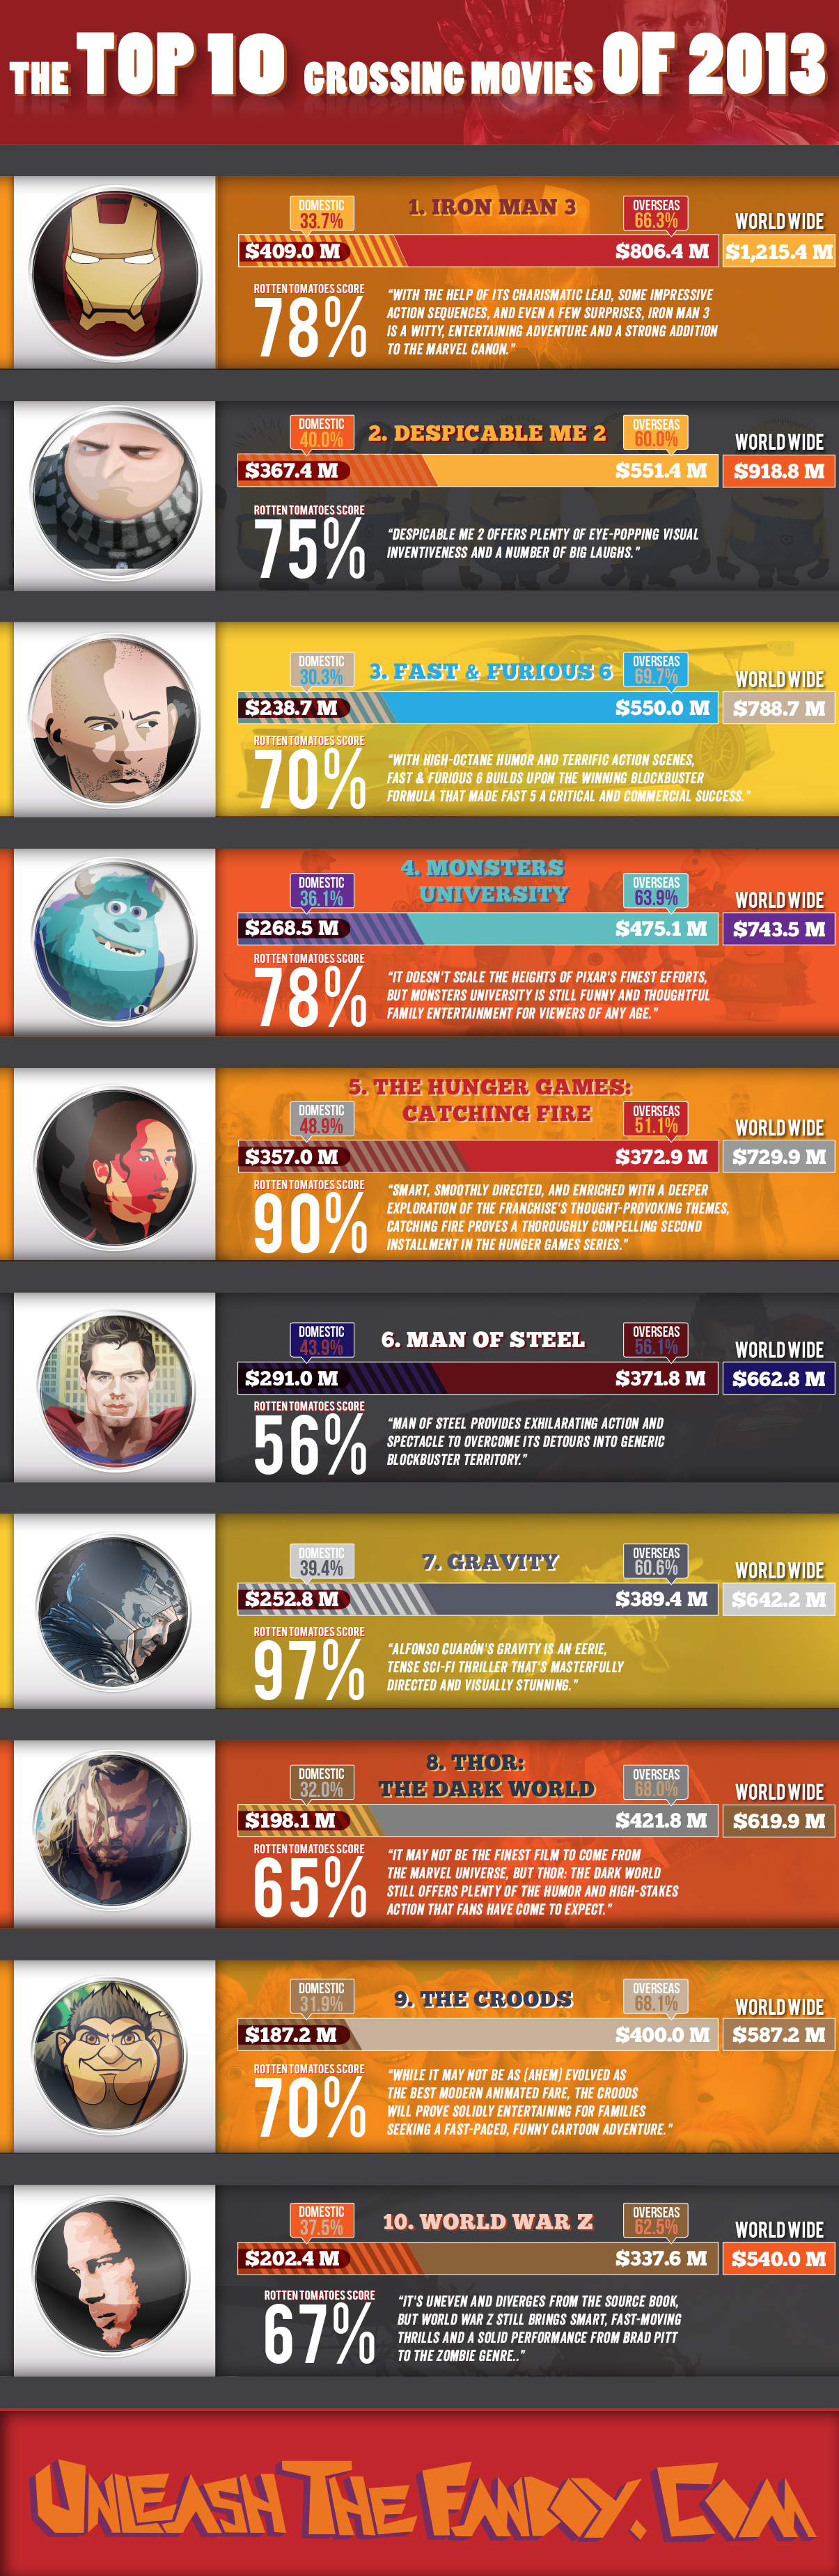 top 10 grossing movies of 2013  infographic